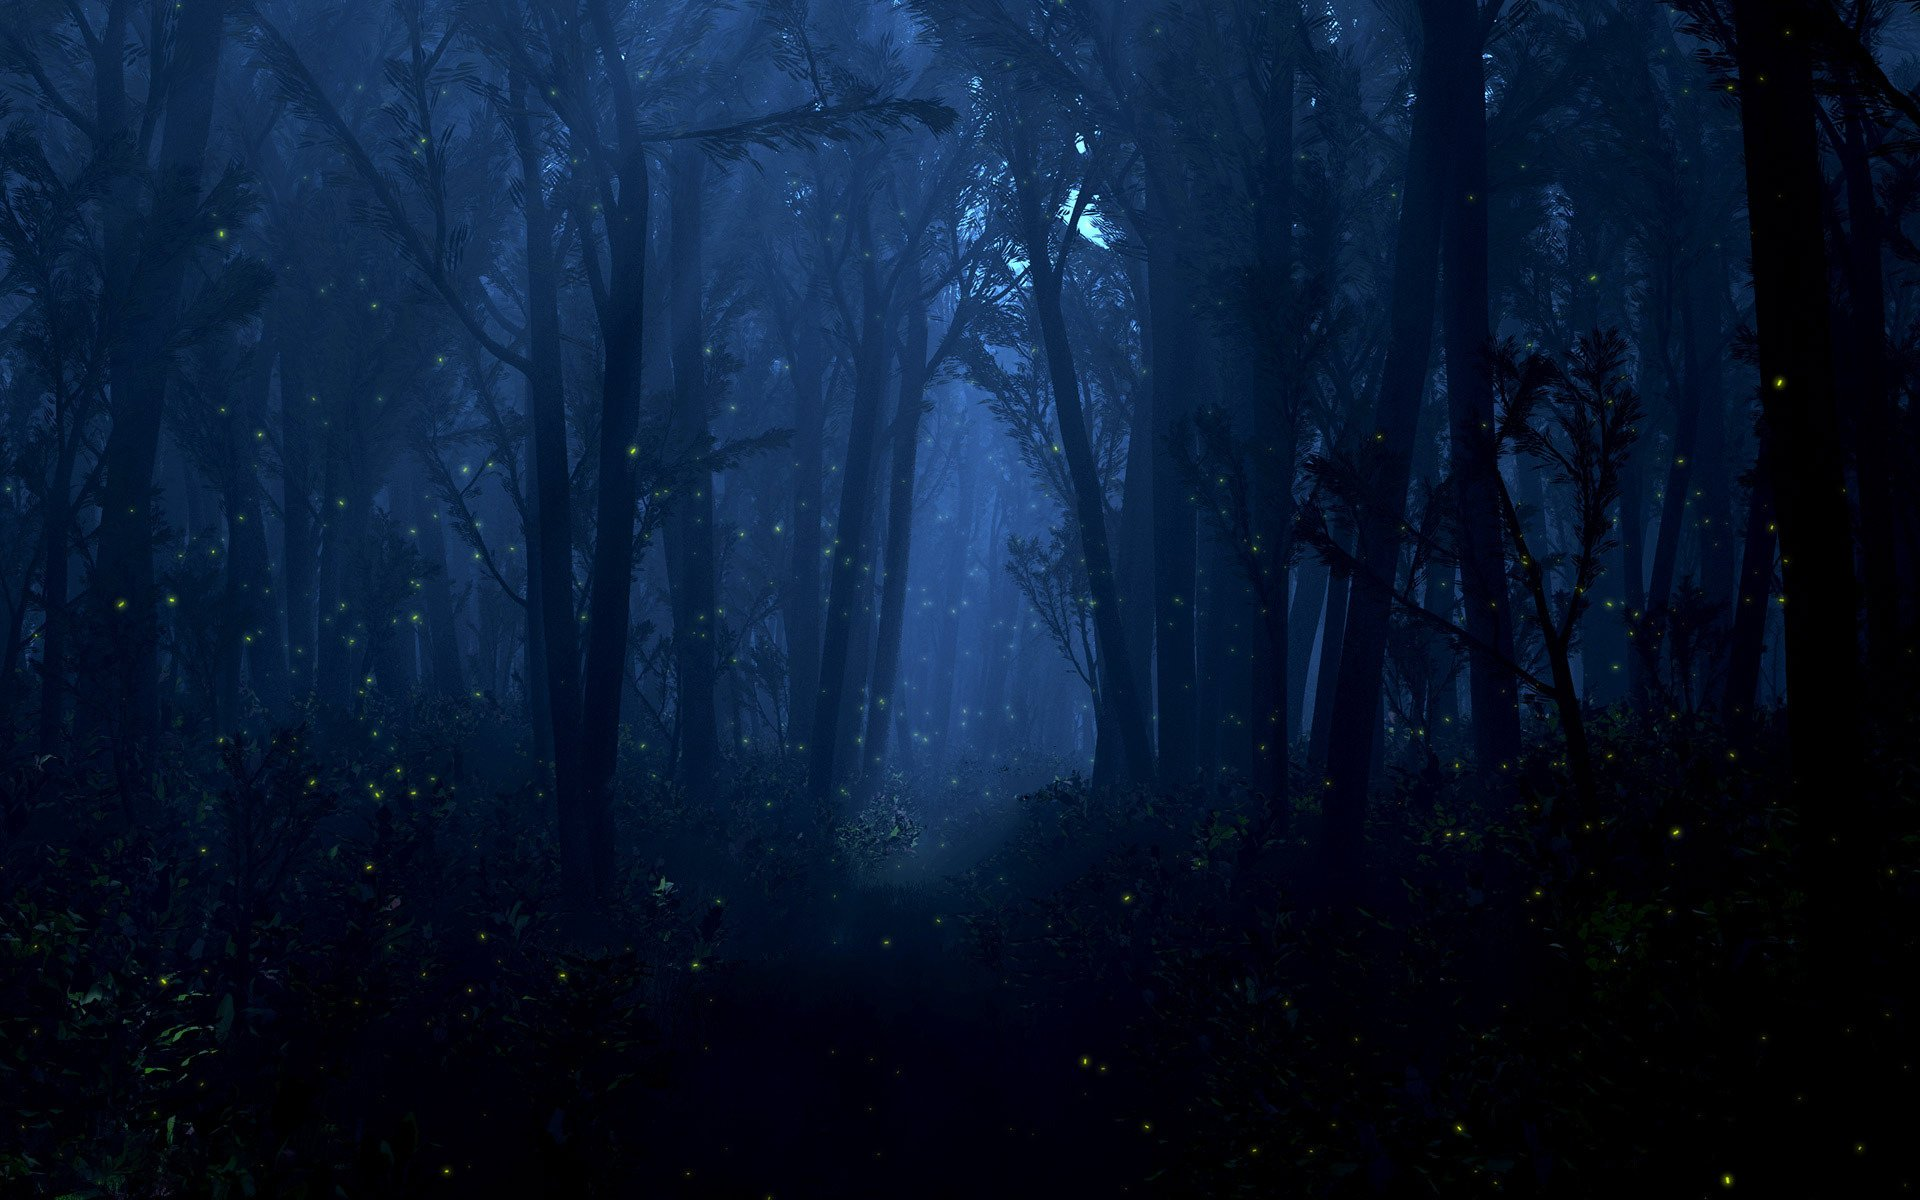 Free Download Night Forest 147 Wallpapers 1920x1200 For